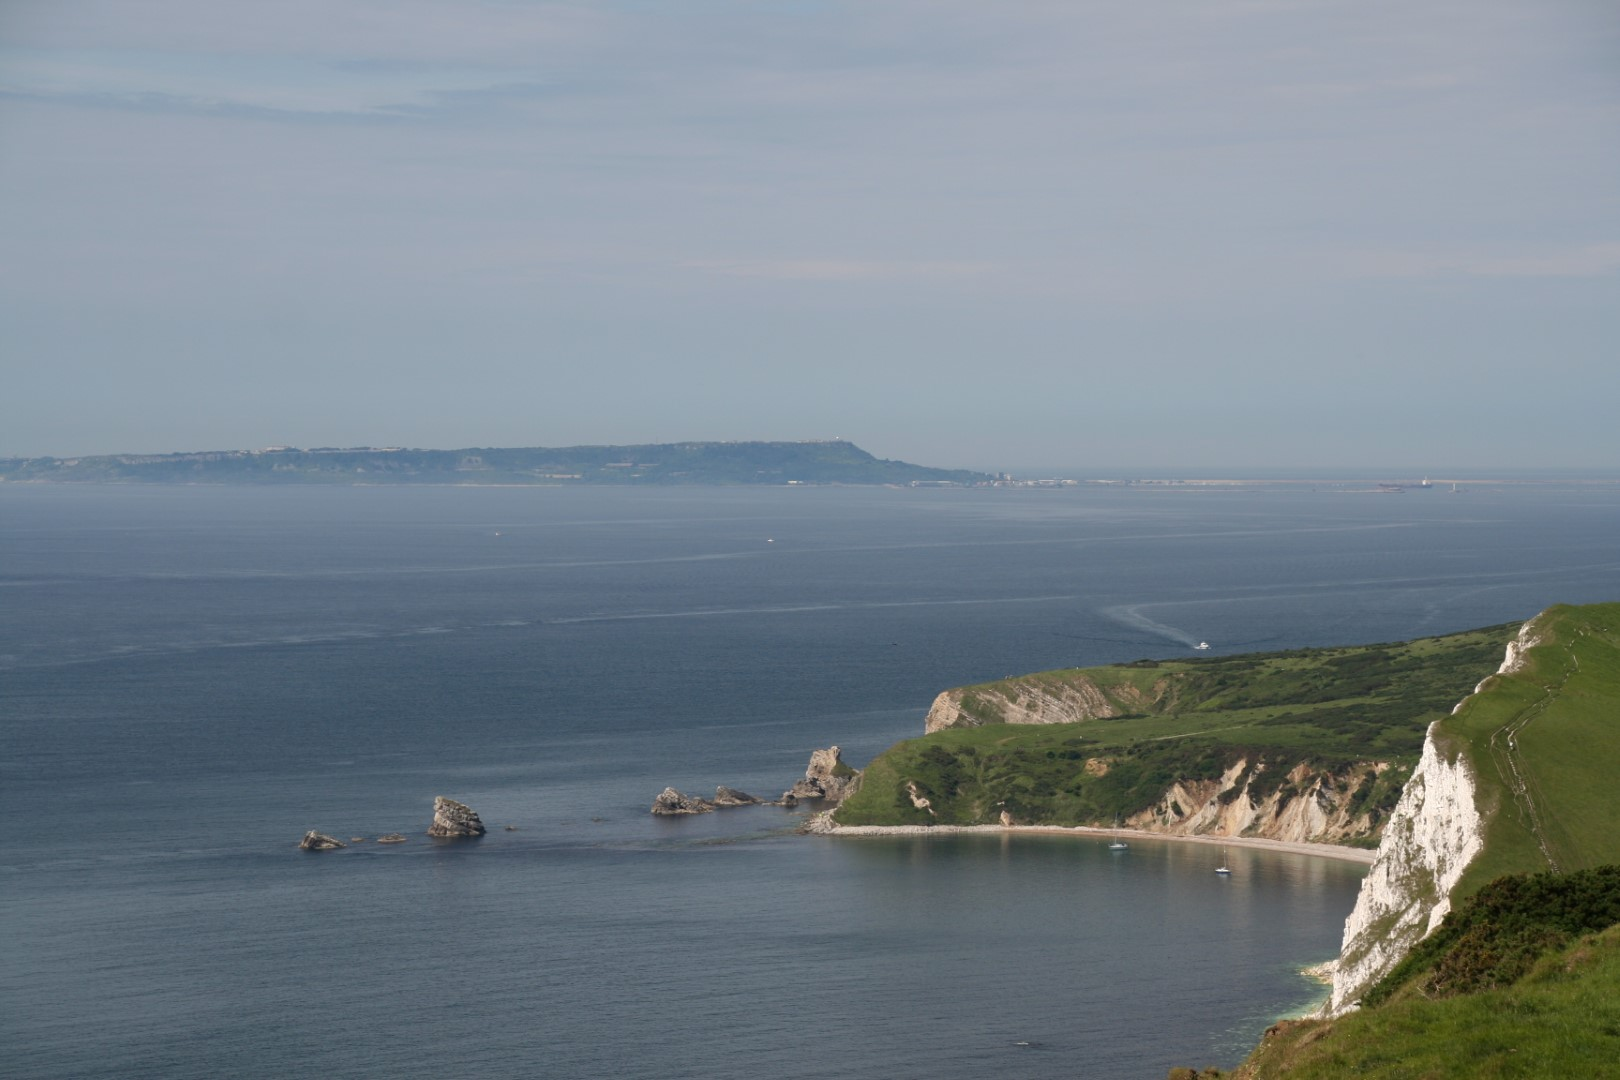 Mupe Rocks with the entrance to Lulworth Cove